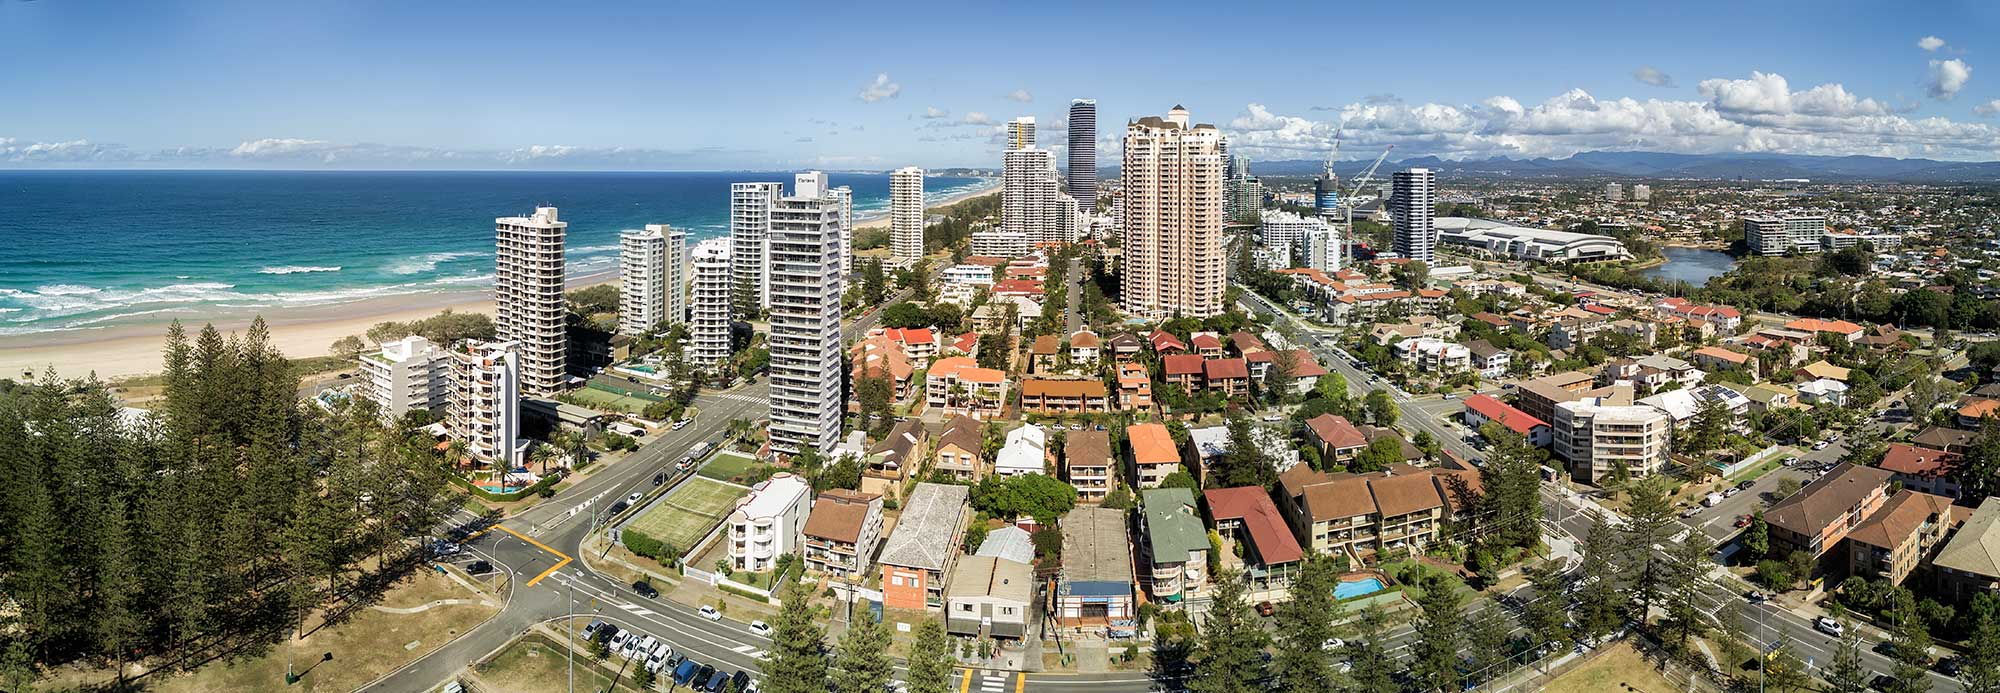 Brisbane drone panorama photography montage of Broadbeach by DroneAce